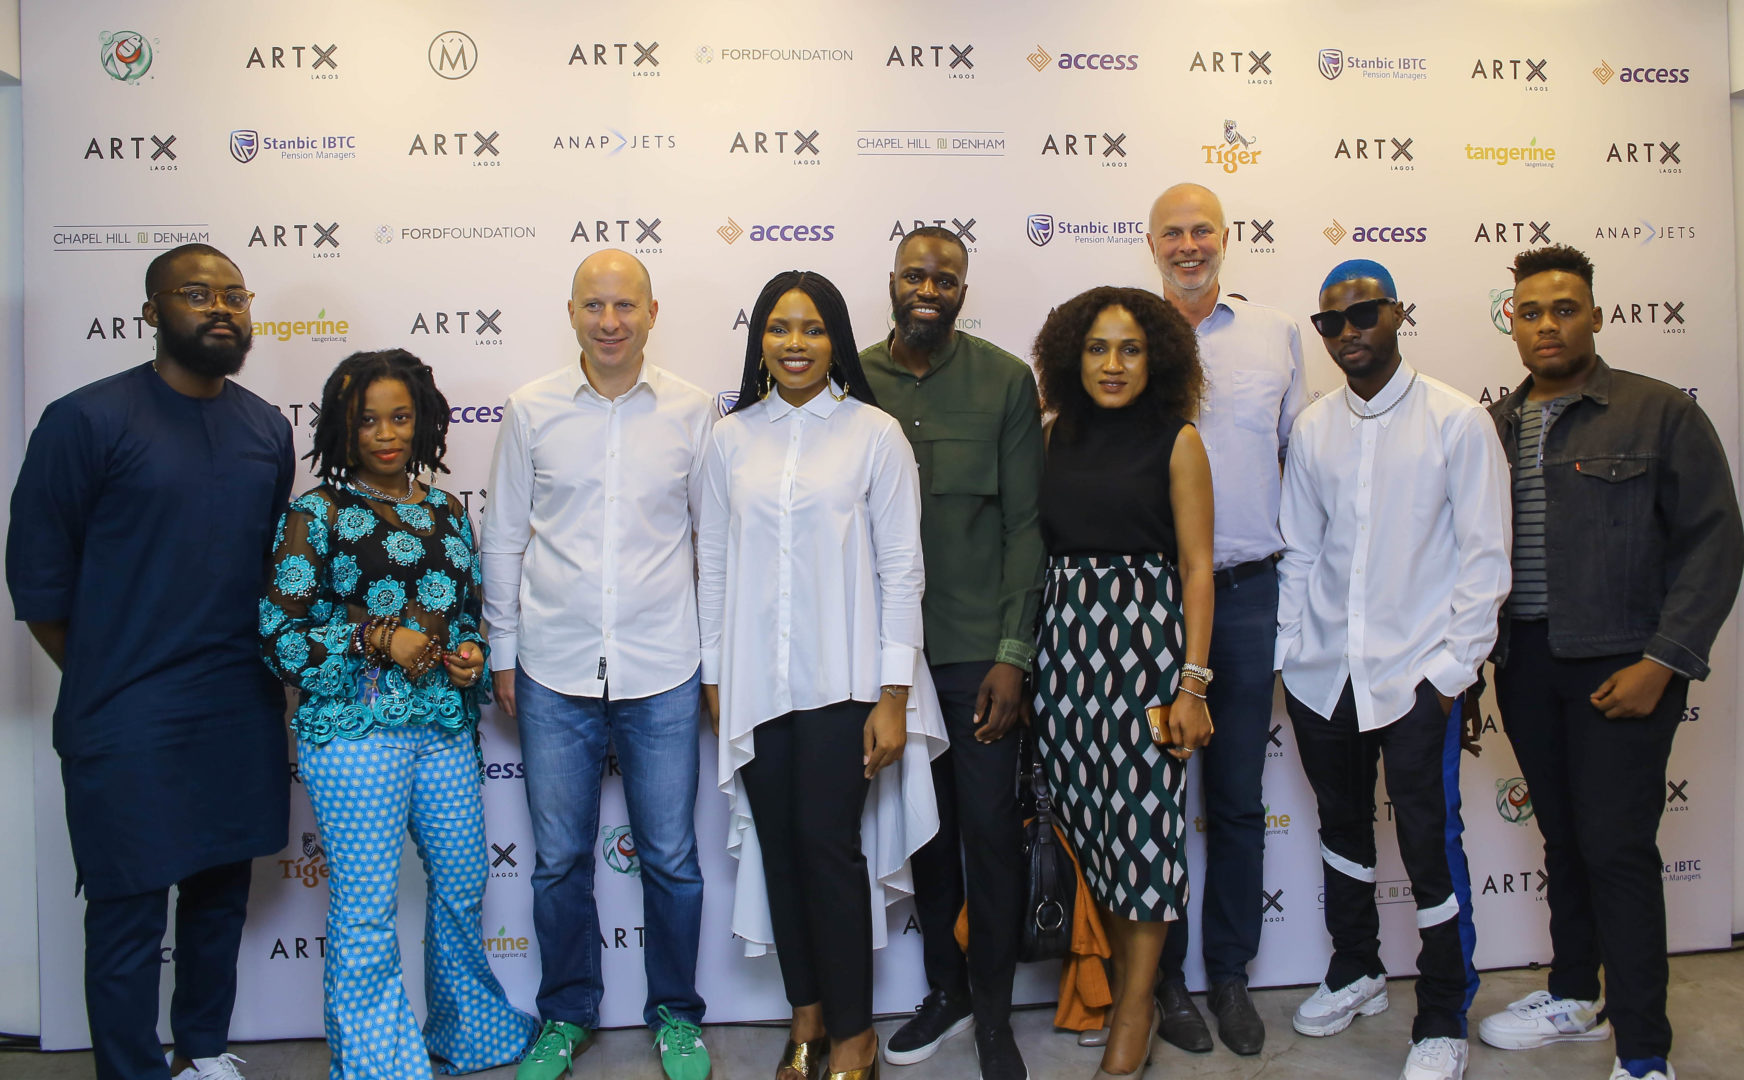 Over 70 exhibiting artists, others for 2019 ART X Lagos